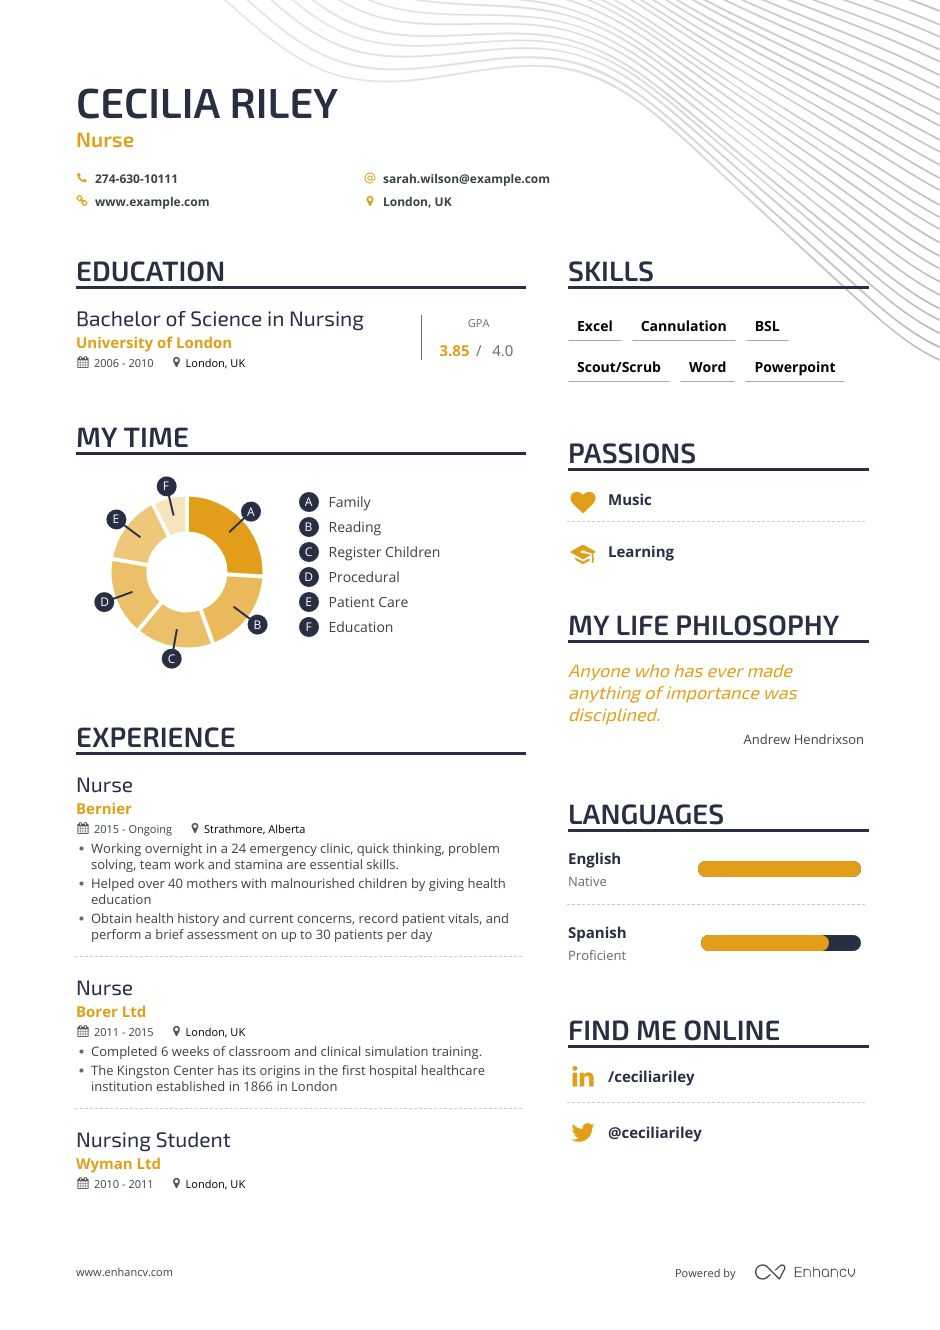 nurse resume example for enhancv new template trained hires on don goodman writing Resume New Nurse Resume Template